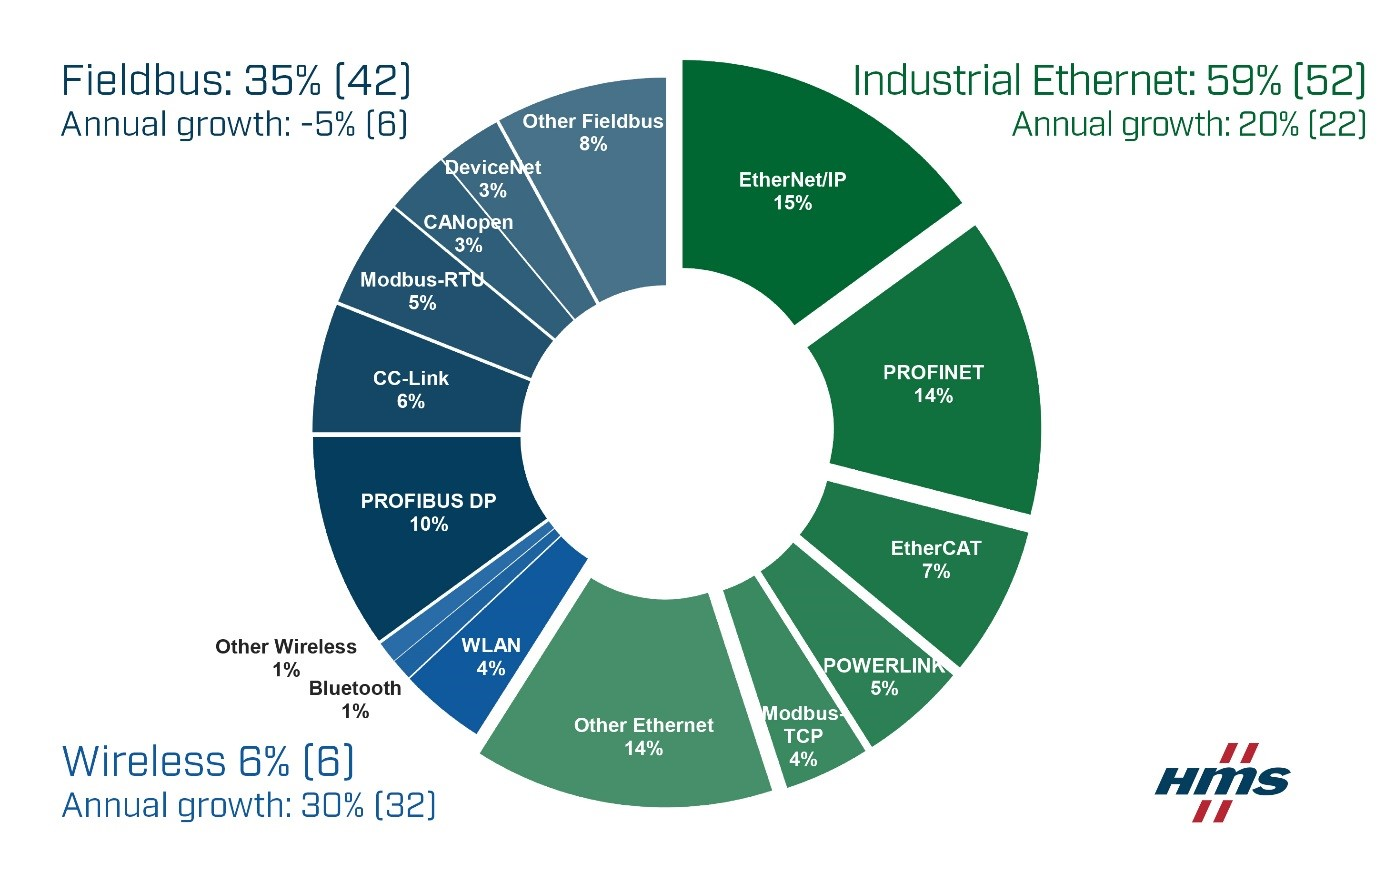 HMS Networks Report: industrial Ethernet now makes up for 59% of the global market